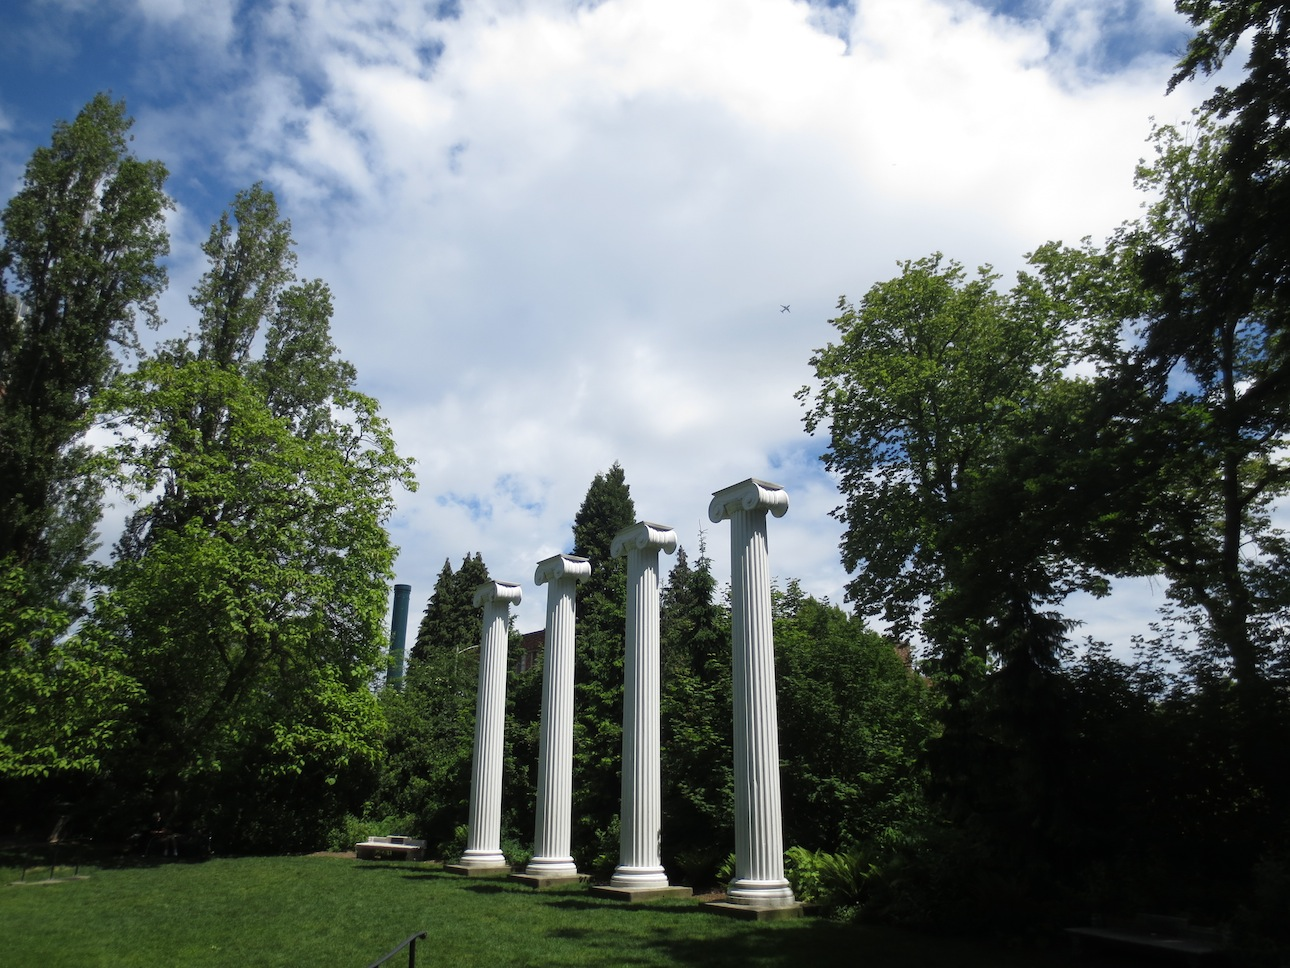 Columns in the grove next to the computer science building.